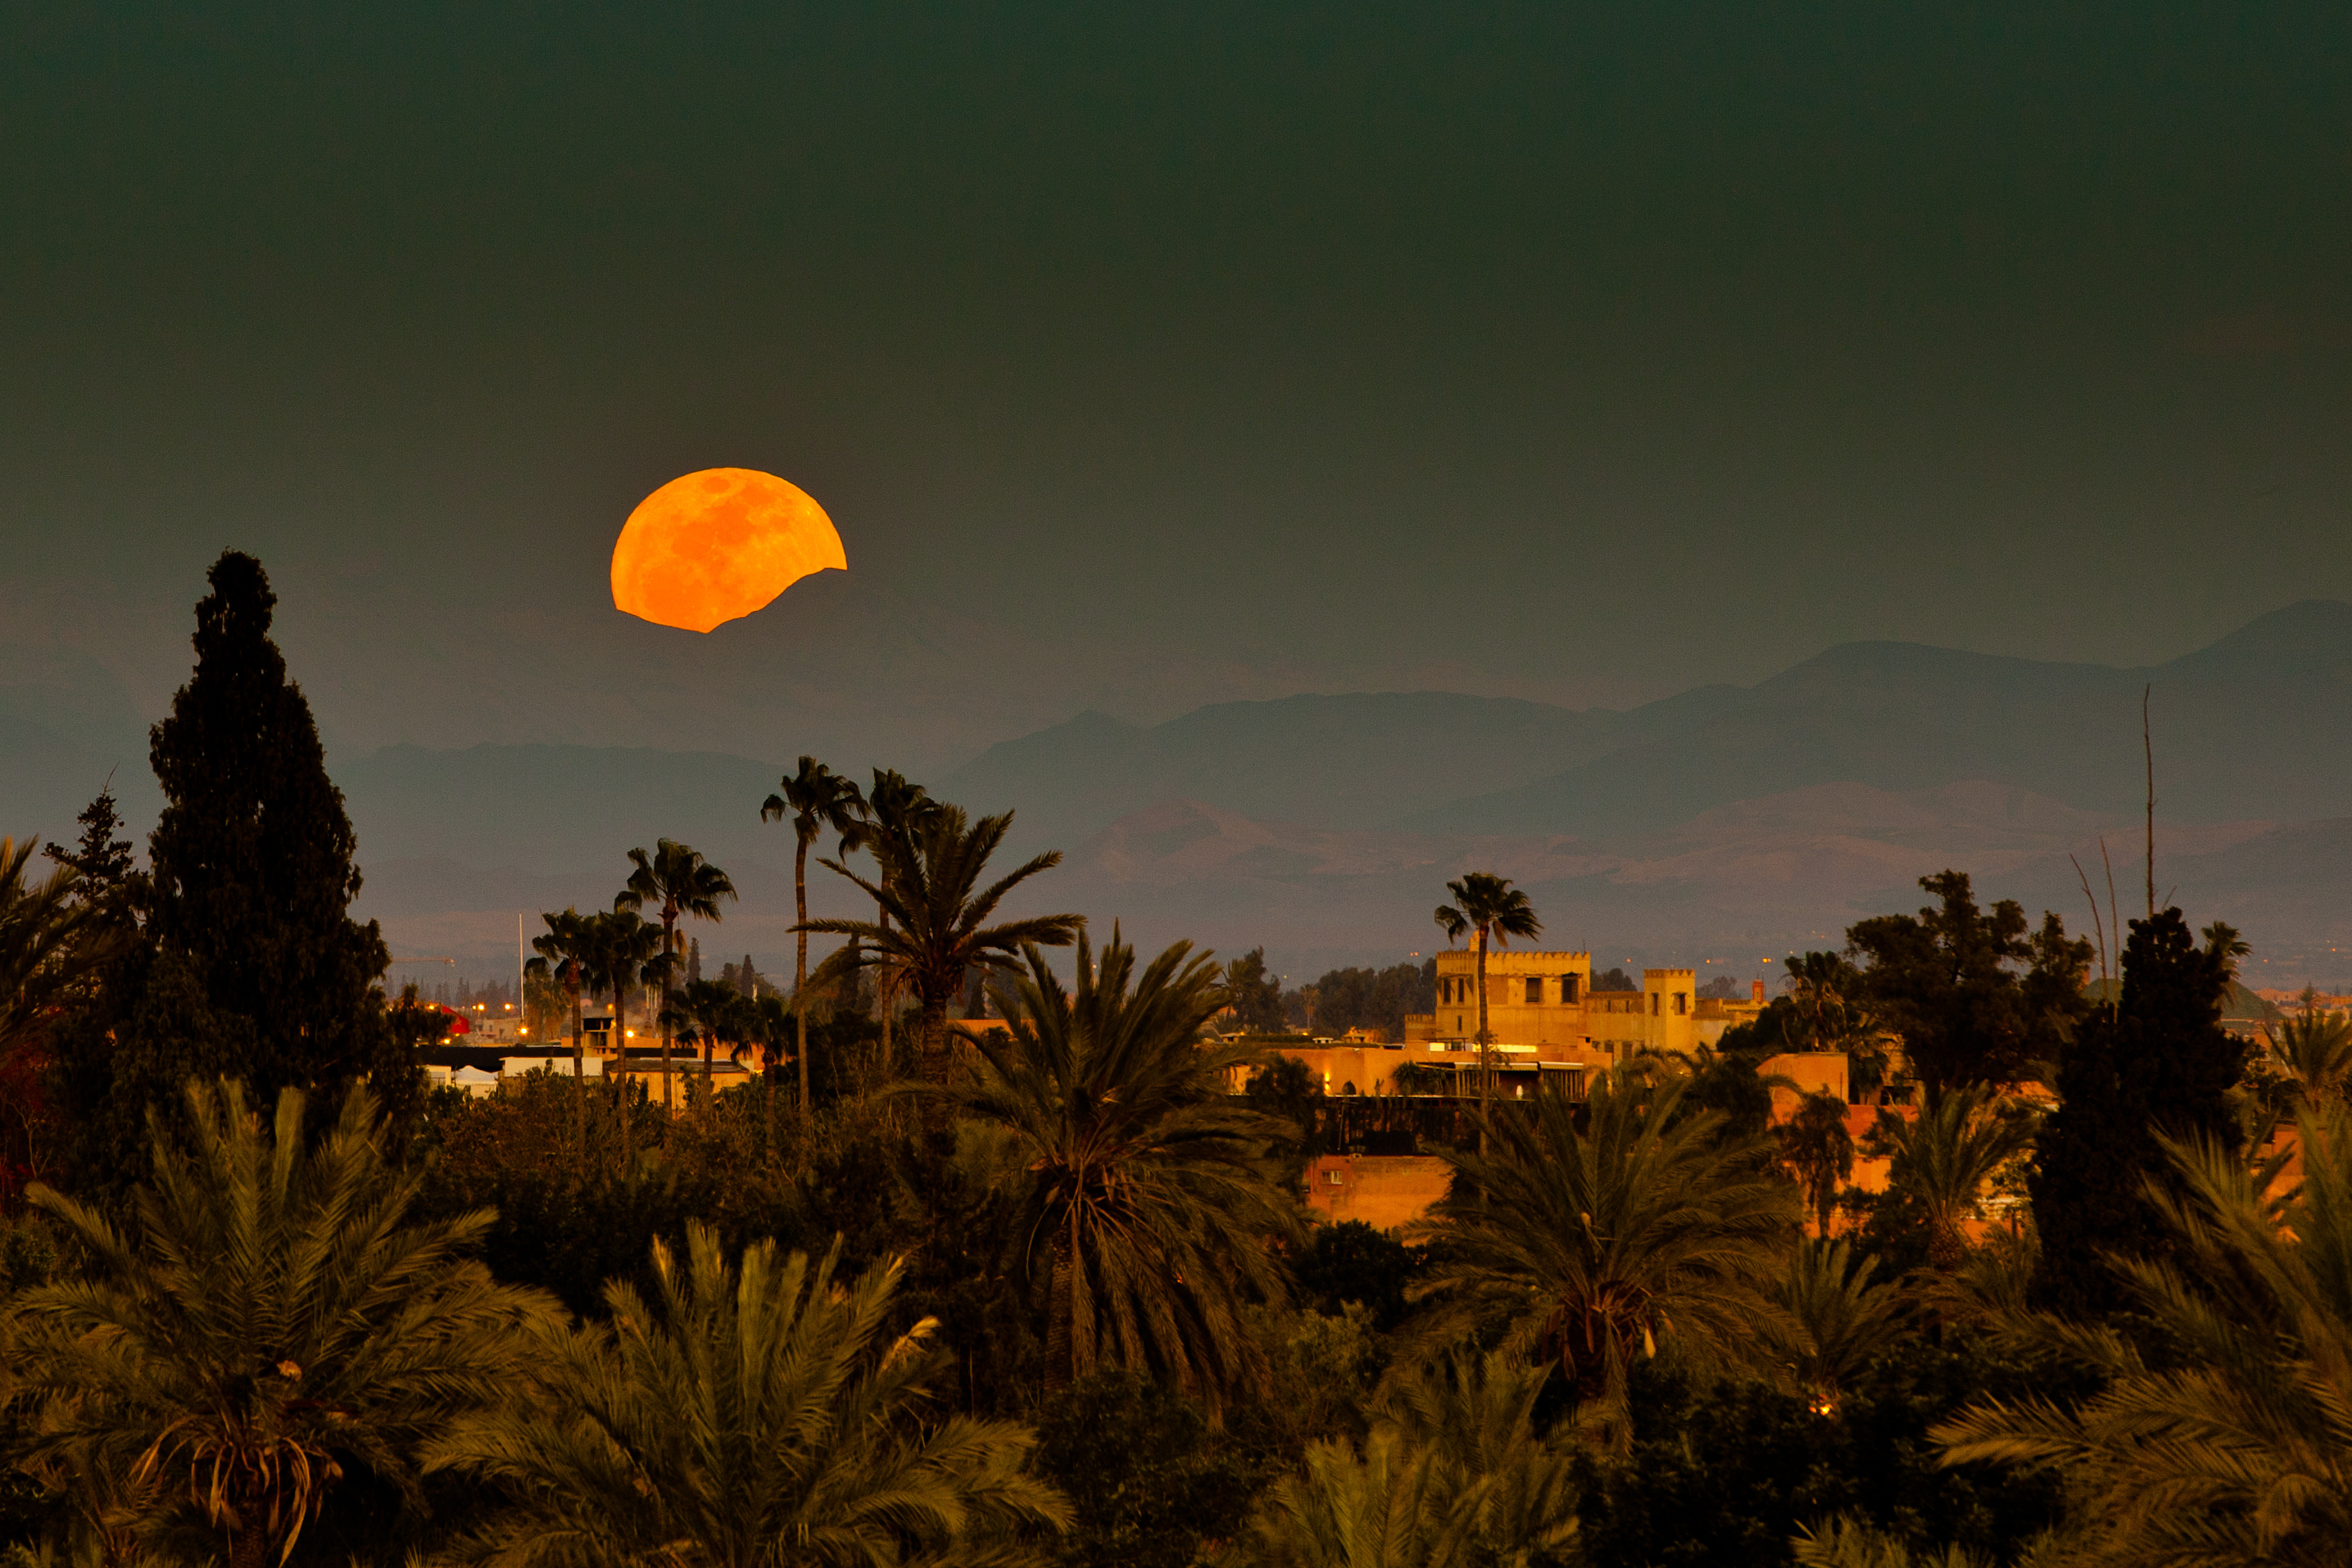 Moon rising in evening light, partly obscured by Atlas mountains.